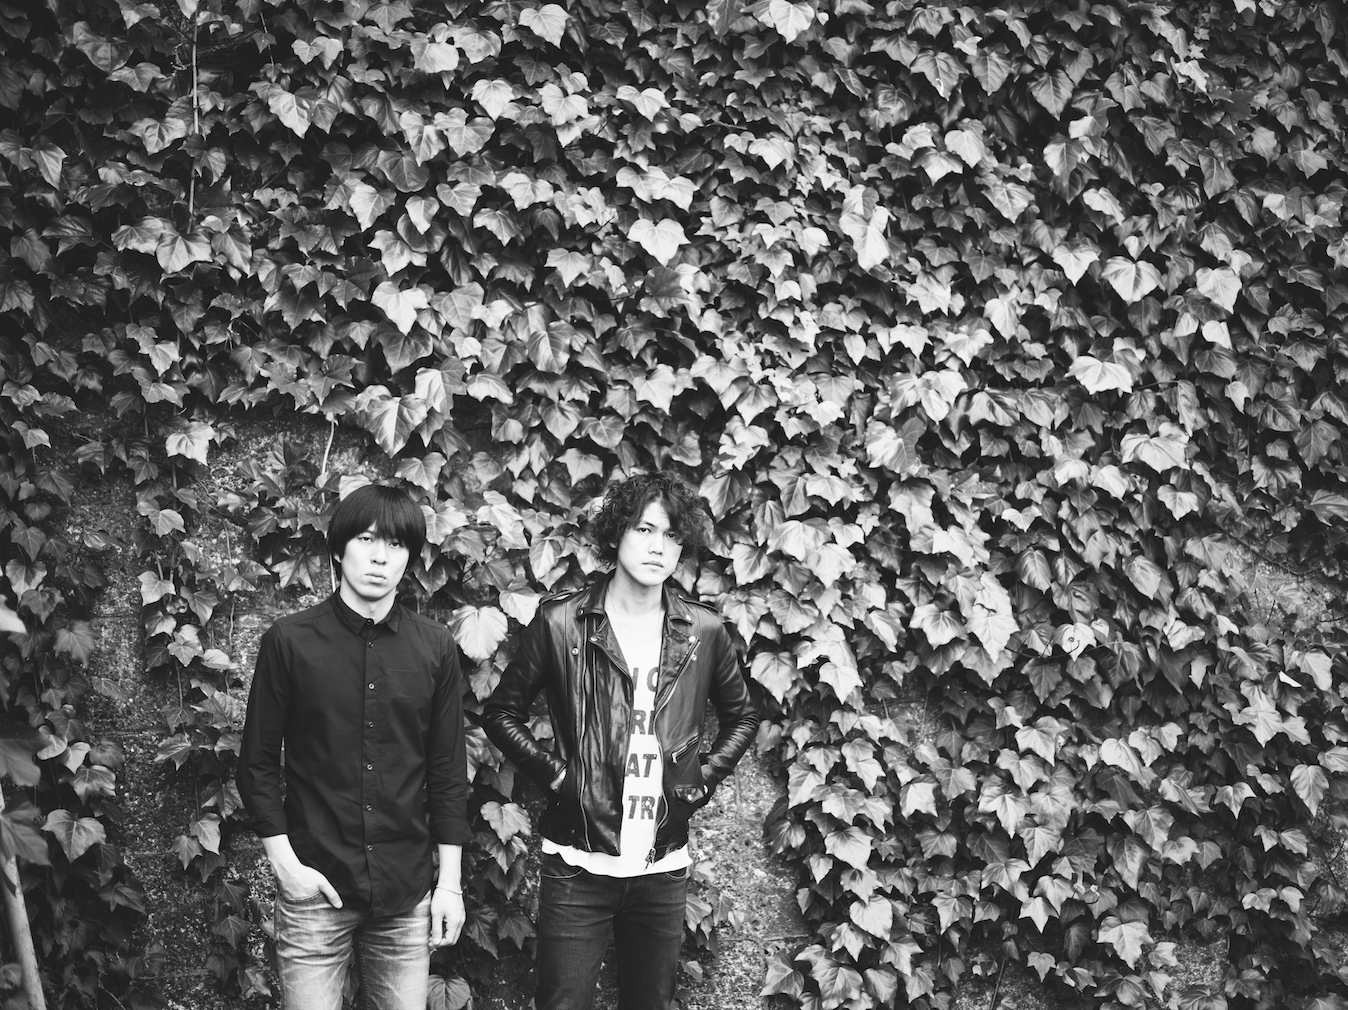 9mm Parabellum Bullet  Photo by 西槇太一